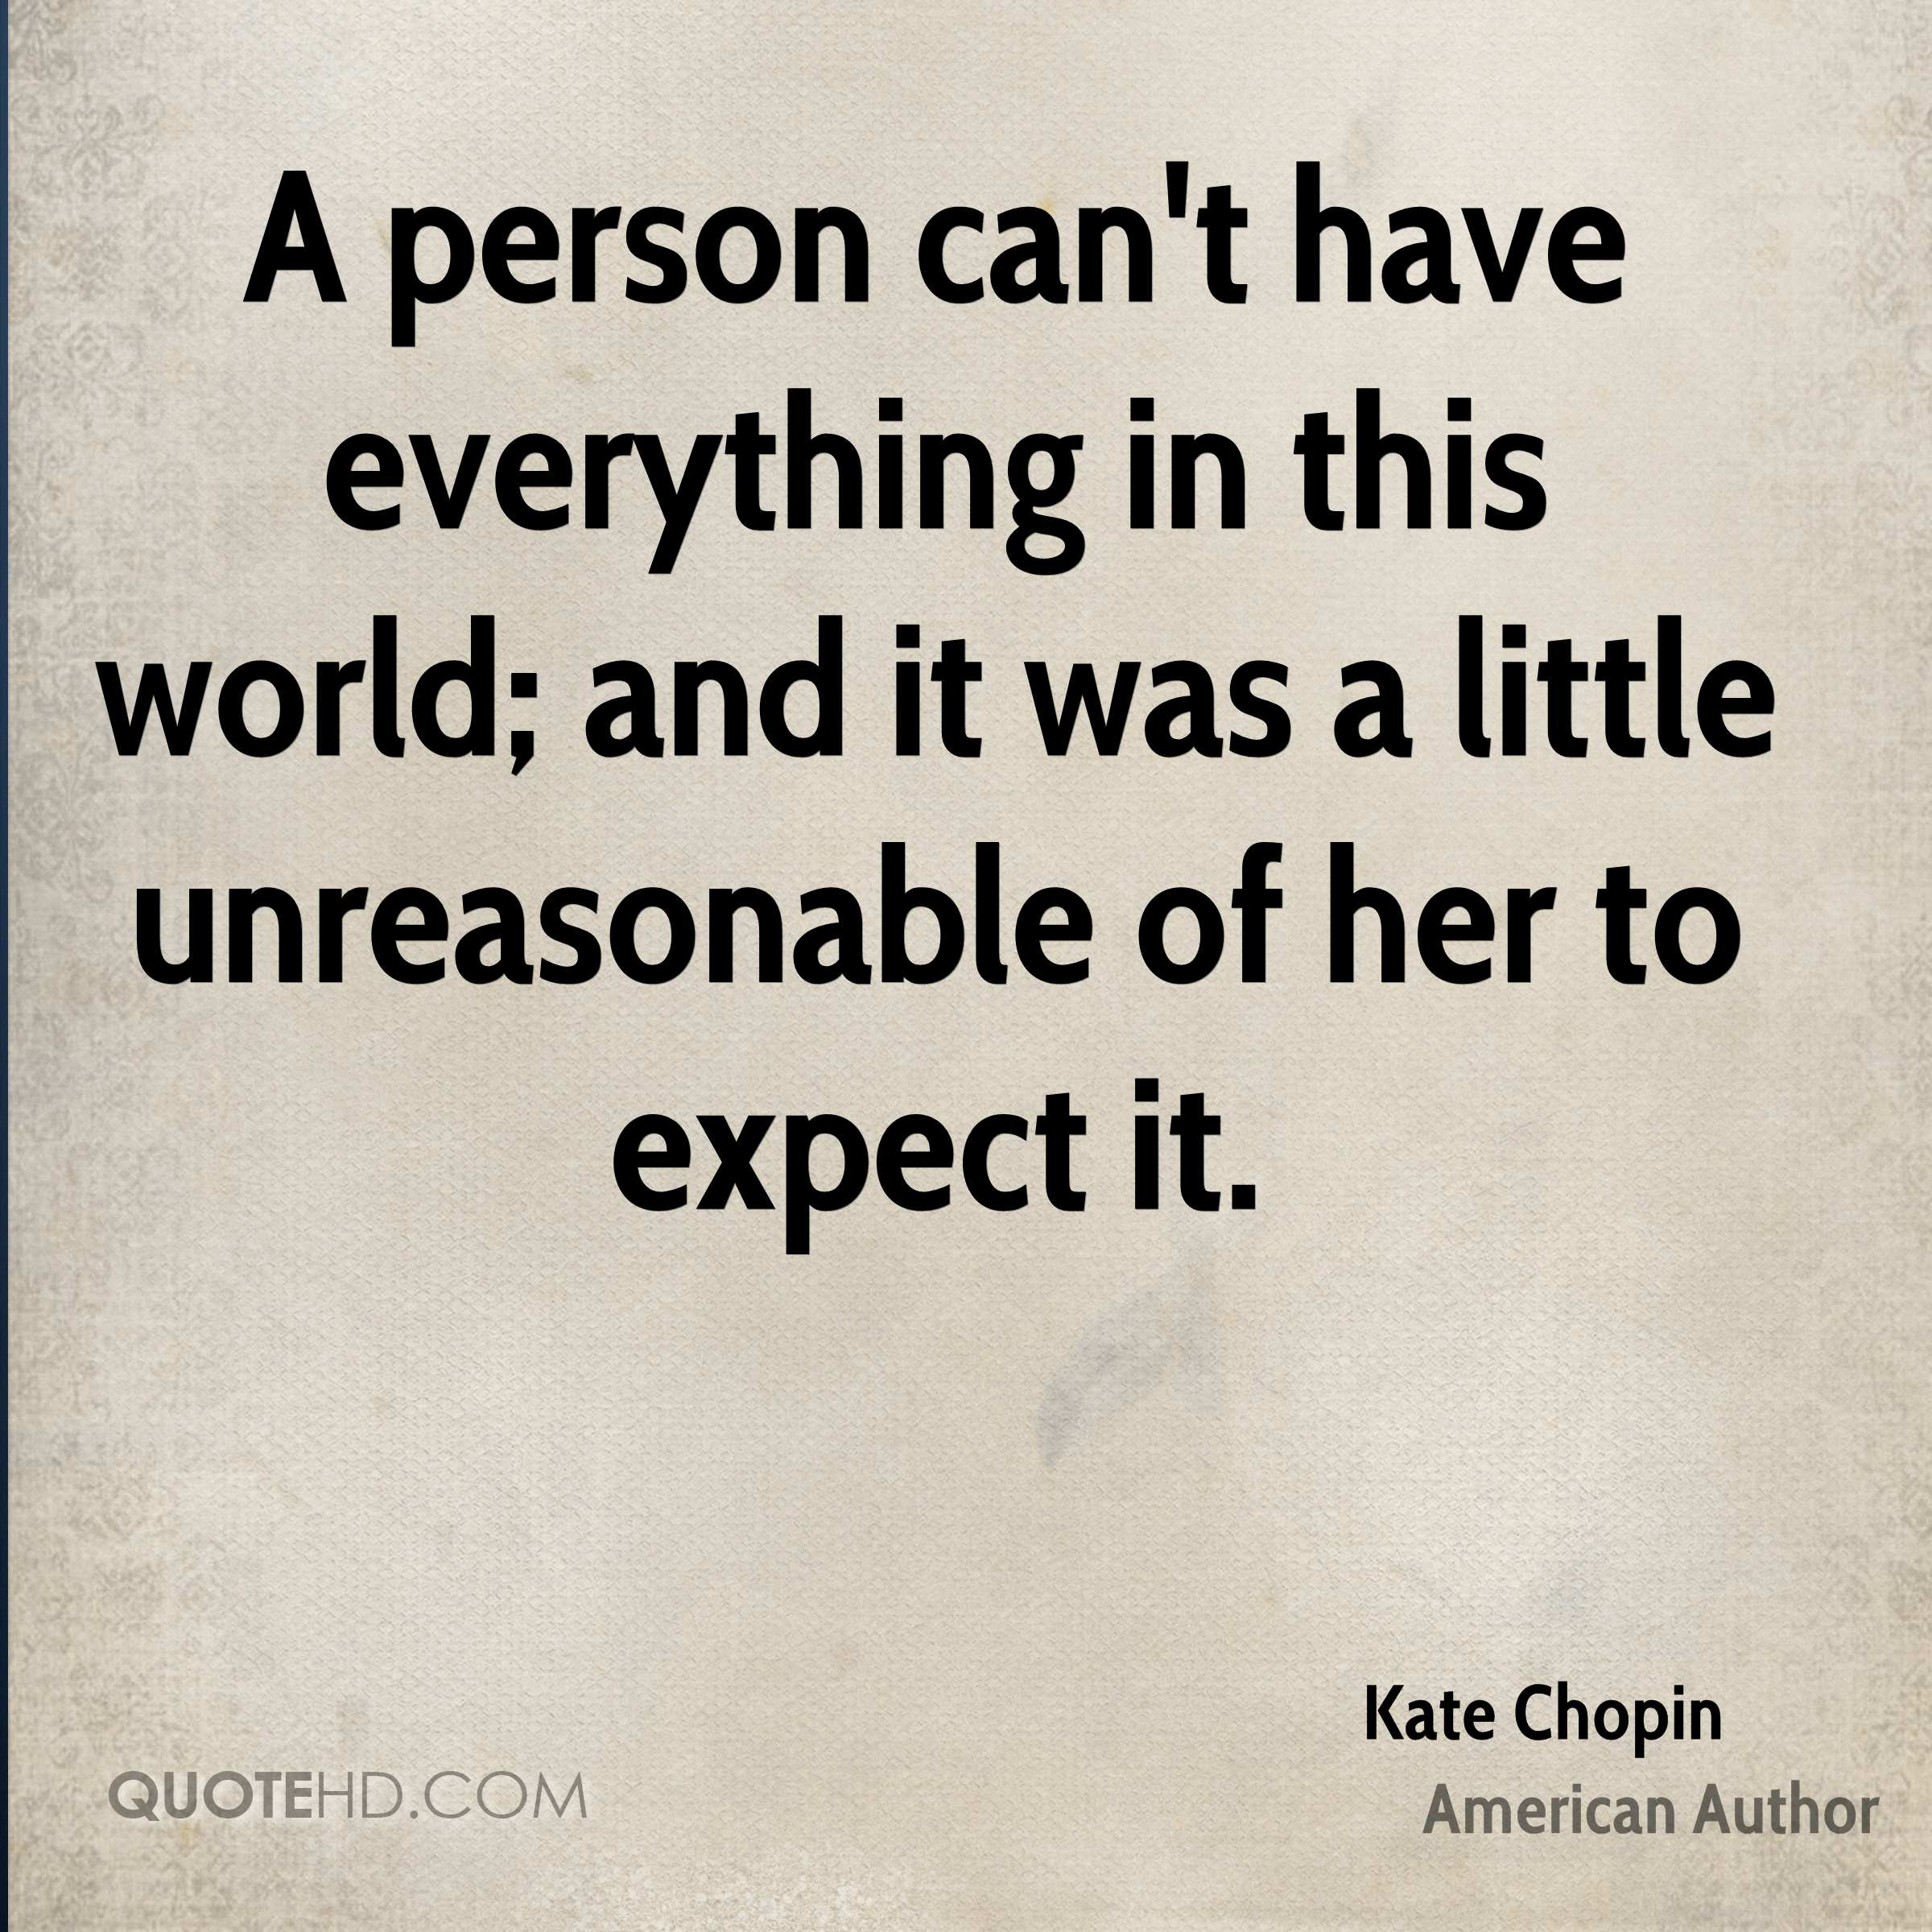 A person can't have everything in this world; and it was a little unreasonable of her to expect it.